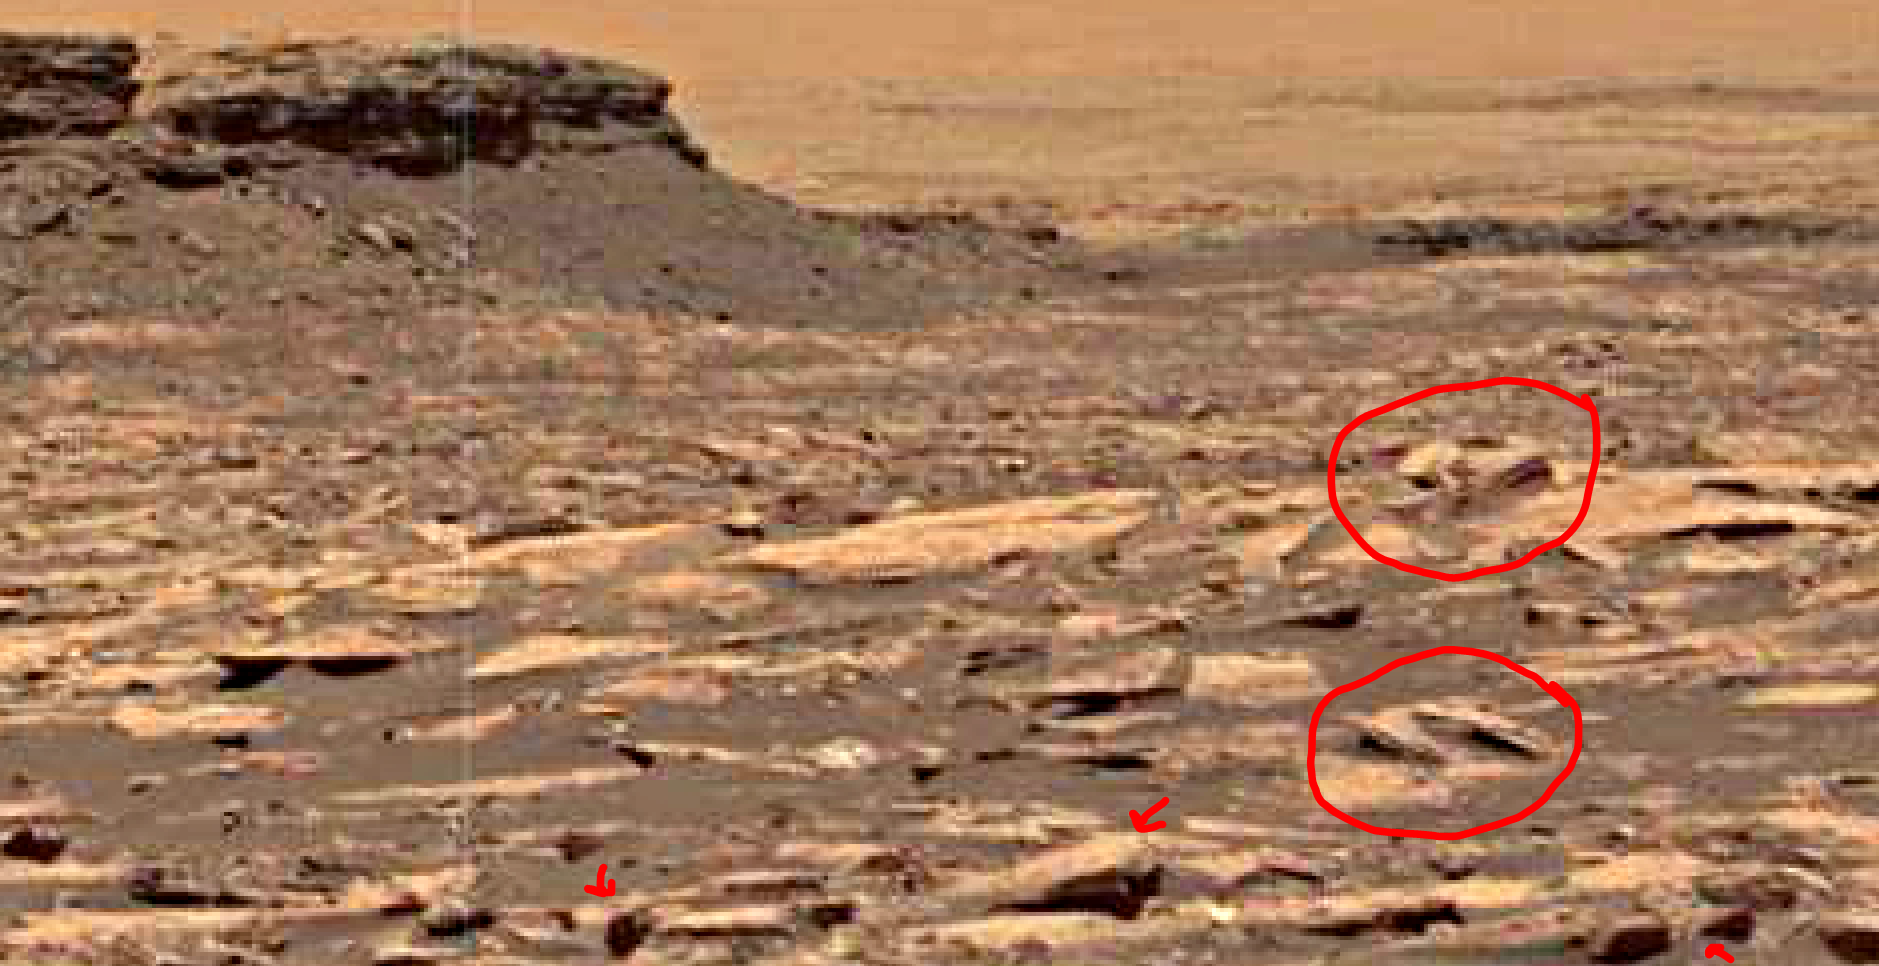 mars-sol-1507-anomaly-artifacts-12-was-life-on-mars